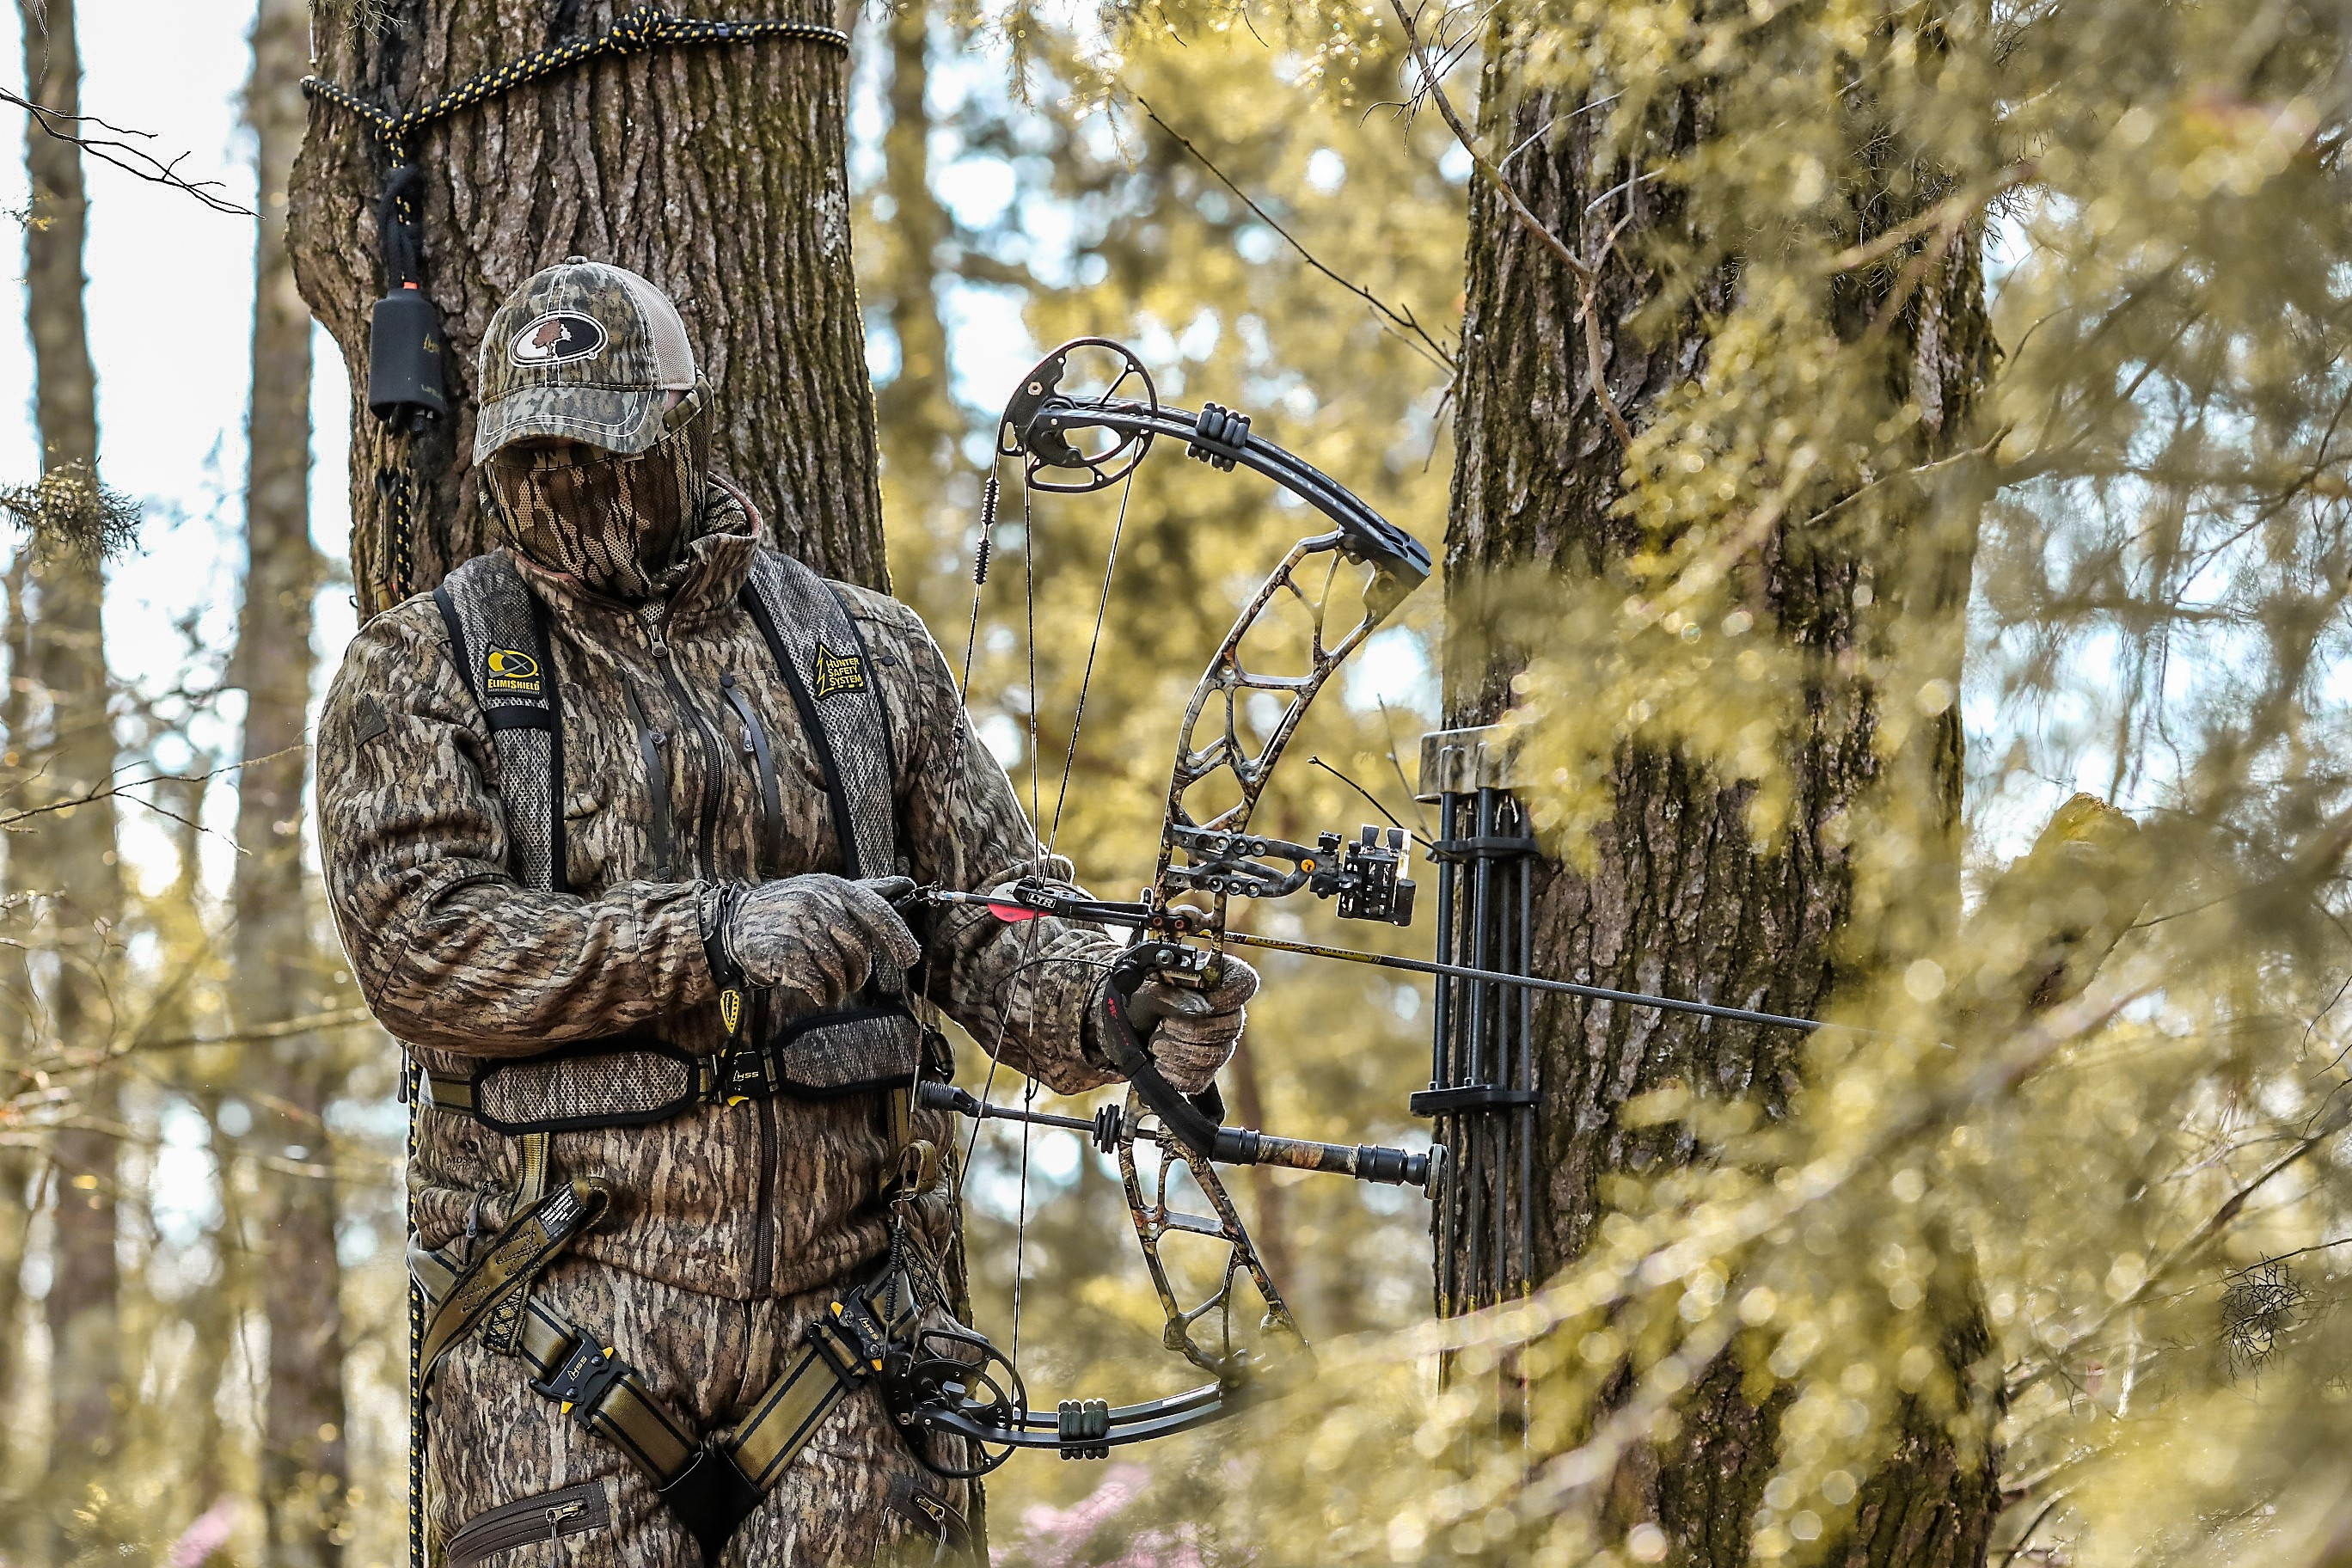 Hunting Above Ground? How to Stay Safe...Treestand Safety Guidelines